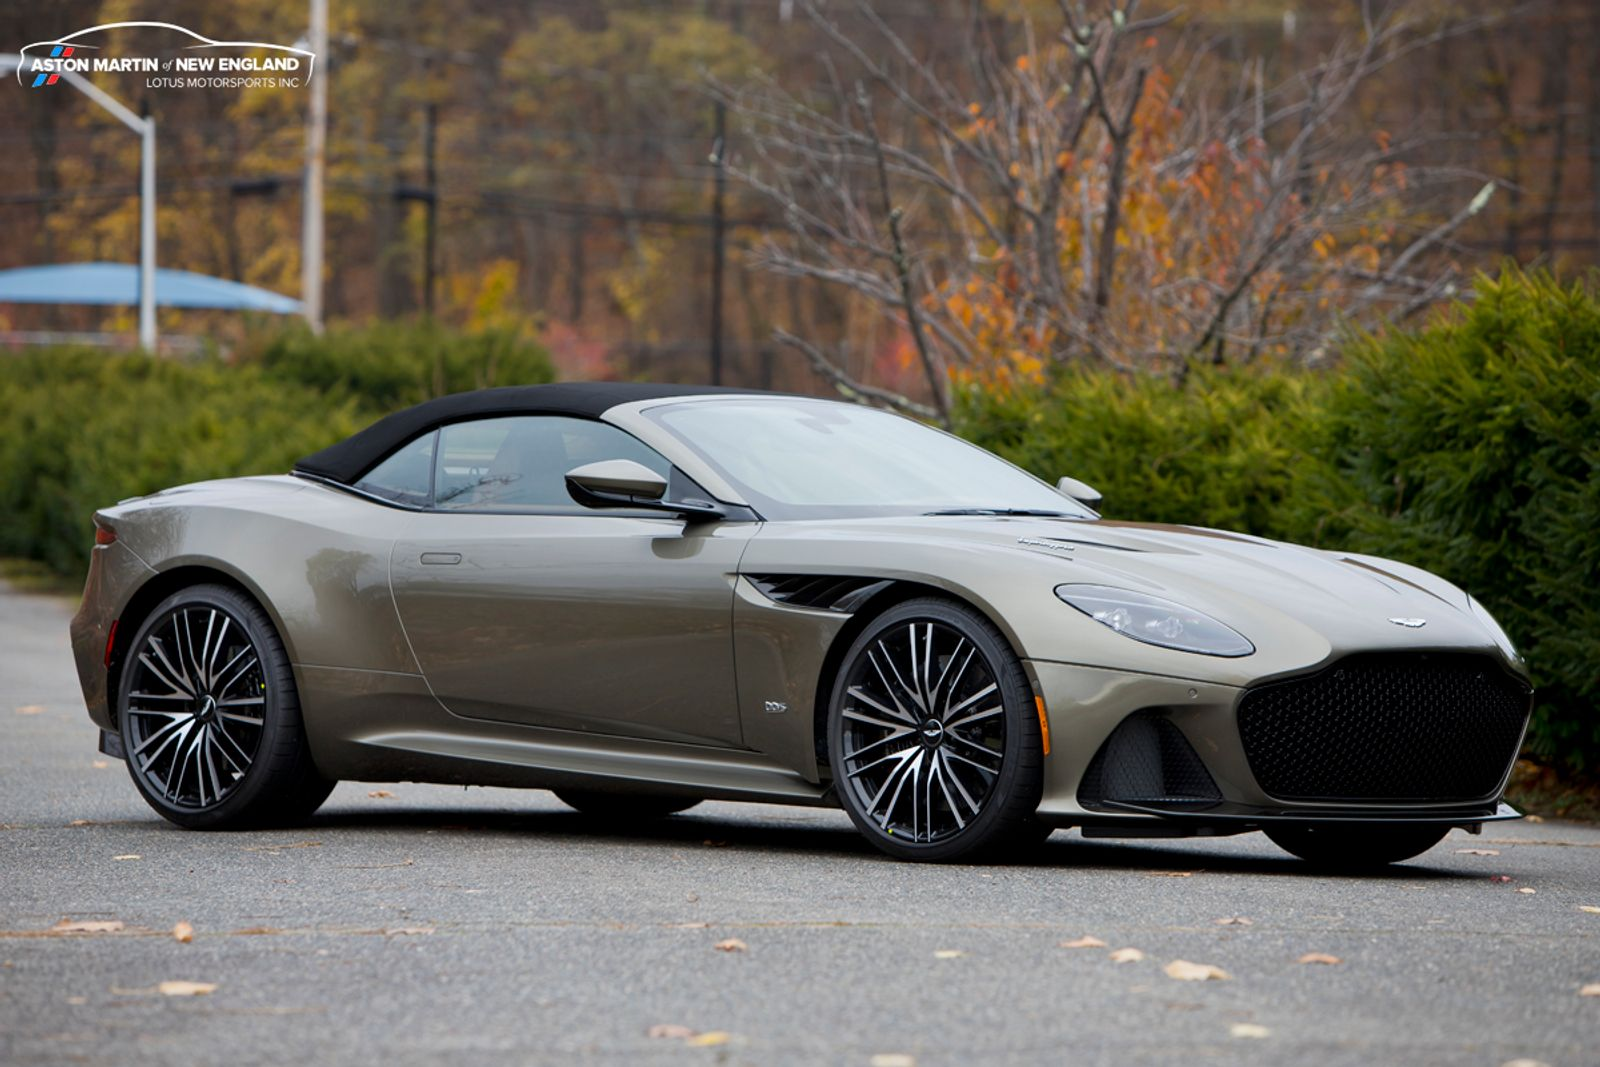 2020 aston martin dbs volante city ma aston martin of new england used cars waltham used car dealer waltham